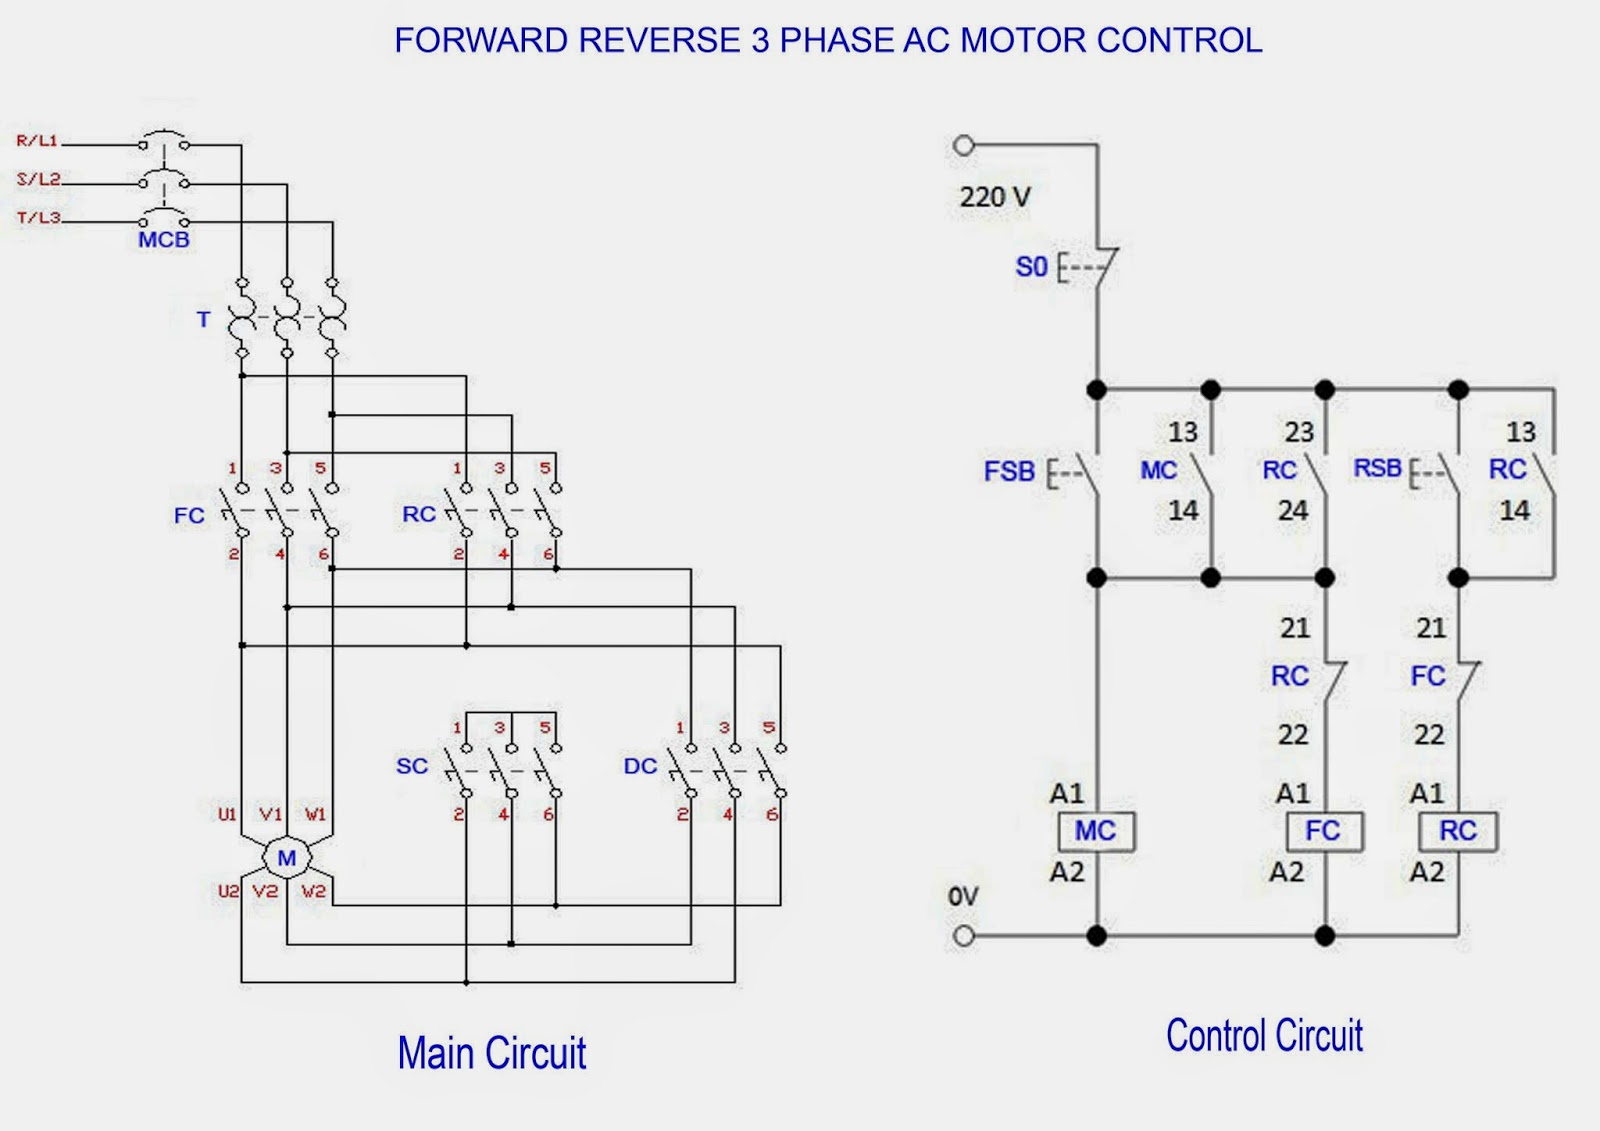 forward reverse 3 phase ac motor control star delta wiring diagram rh elect eng world1 blogspot com